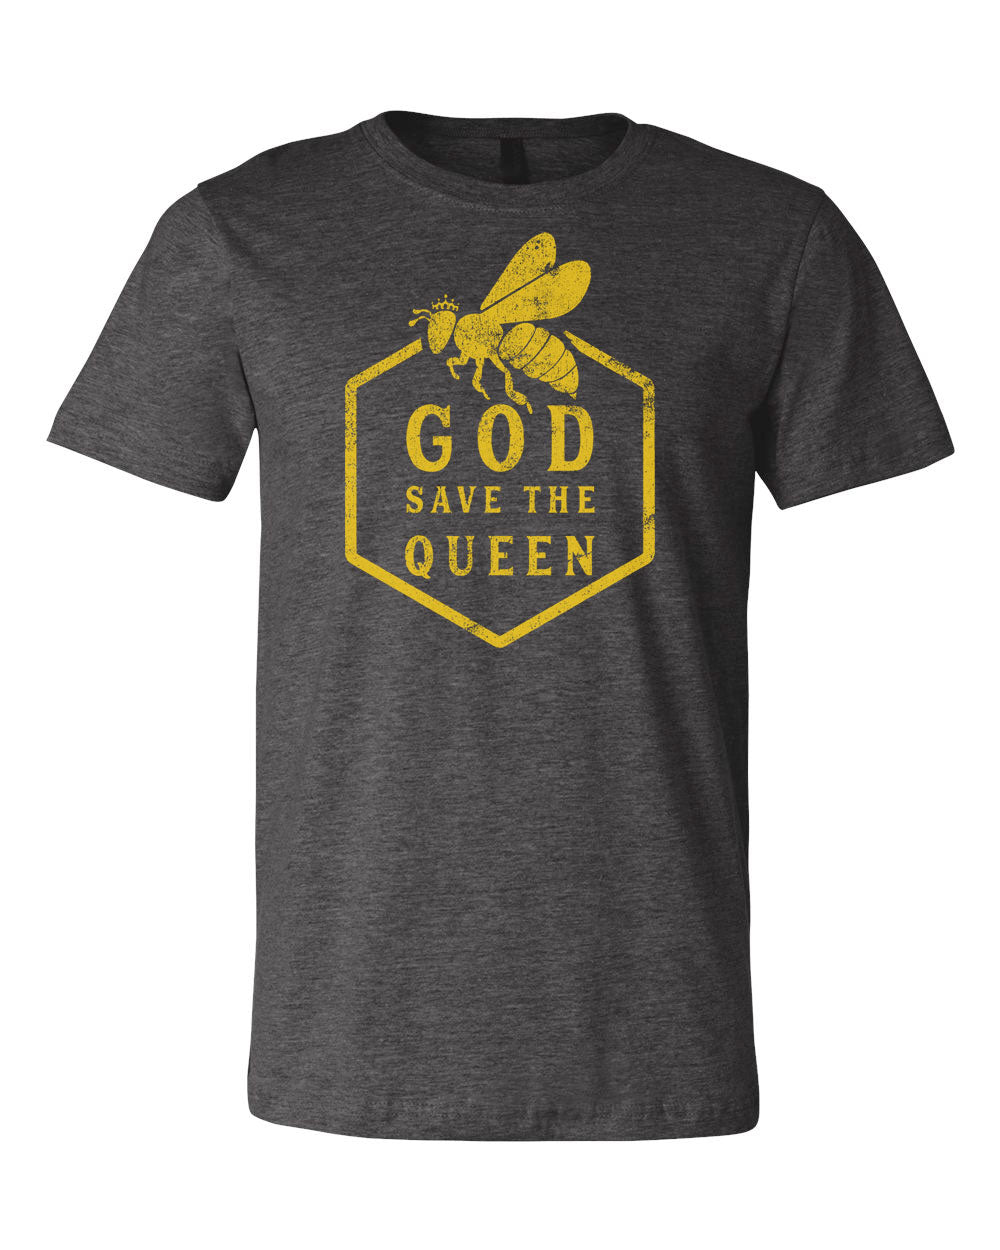 God Save the Queen T-shirts Starter Pack of 10